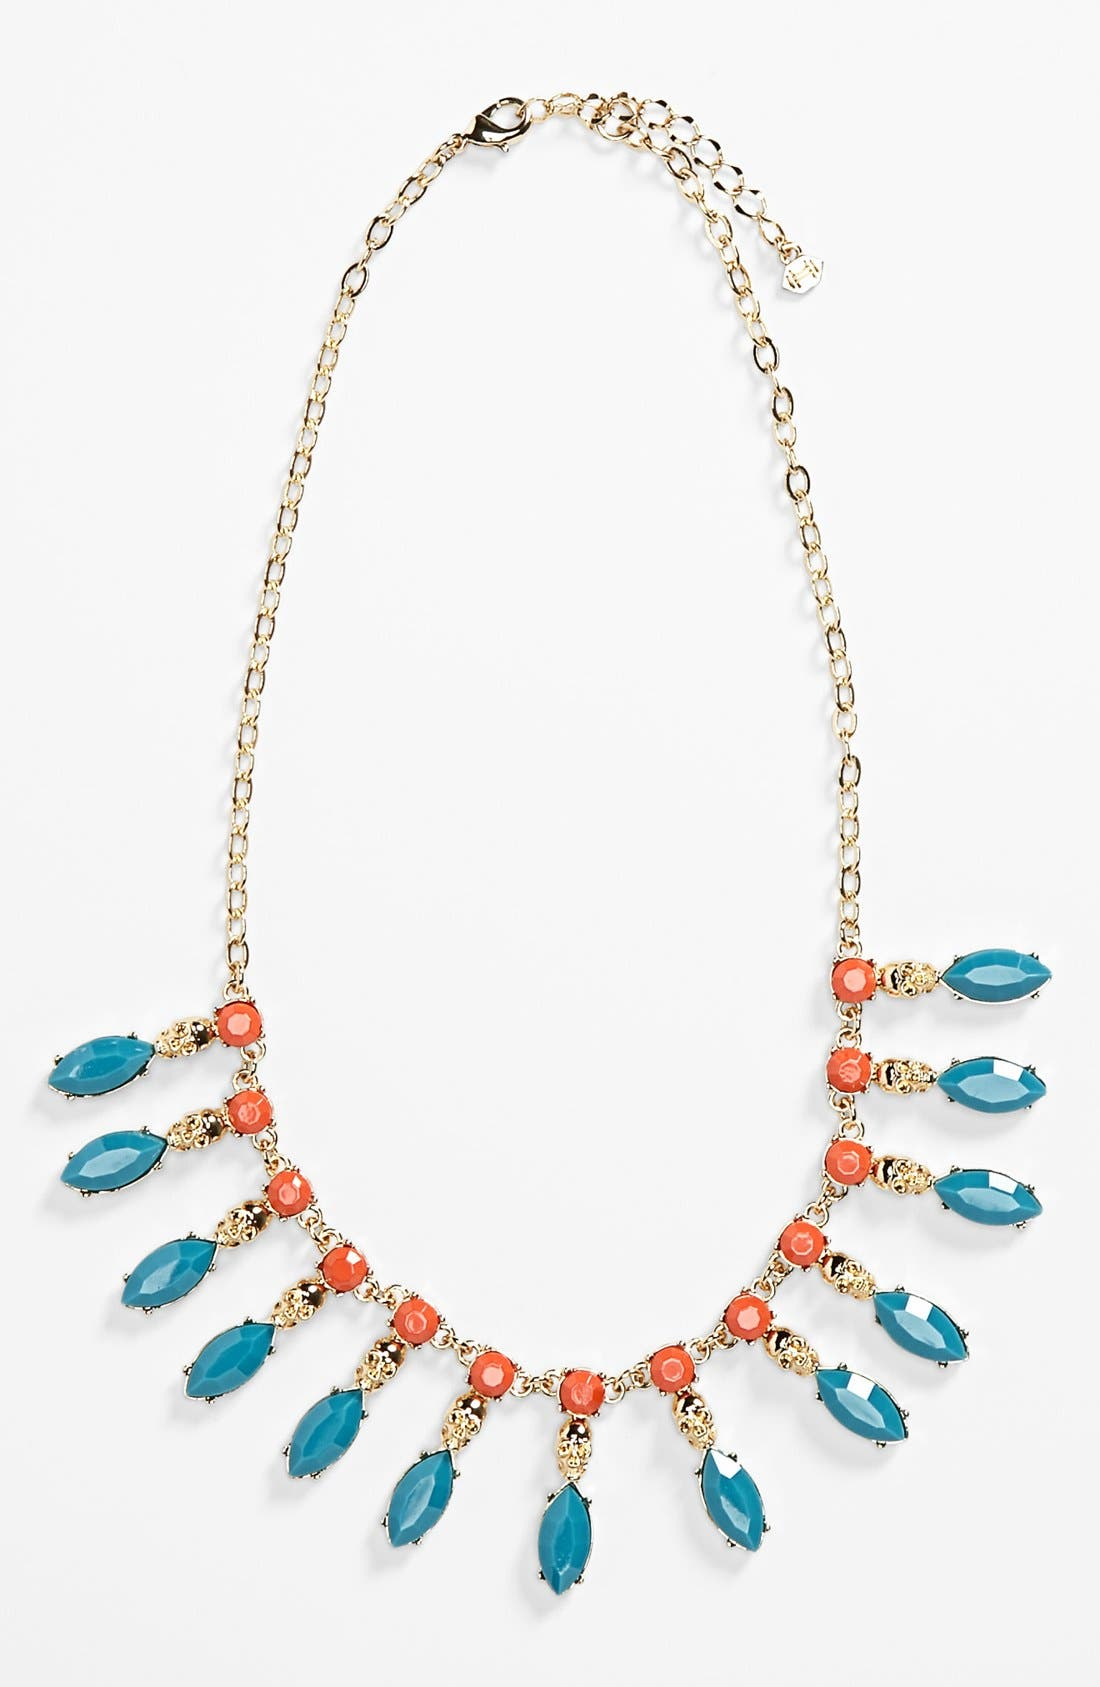 Alternate Image 1 Selected - Metal Haven by KENDALL + KYLIE Skull Necklace (Juniors) (Nordstrom Exclusive)